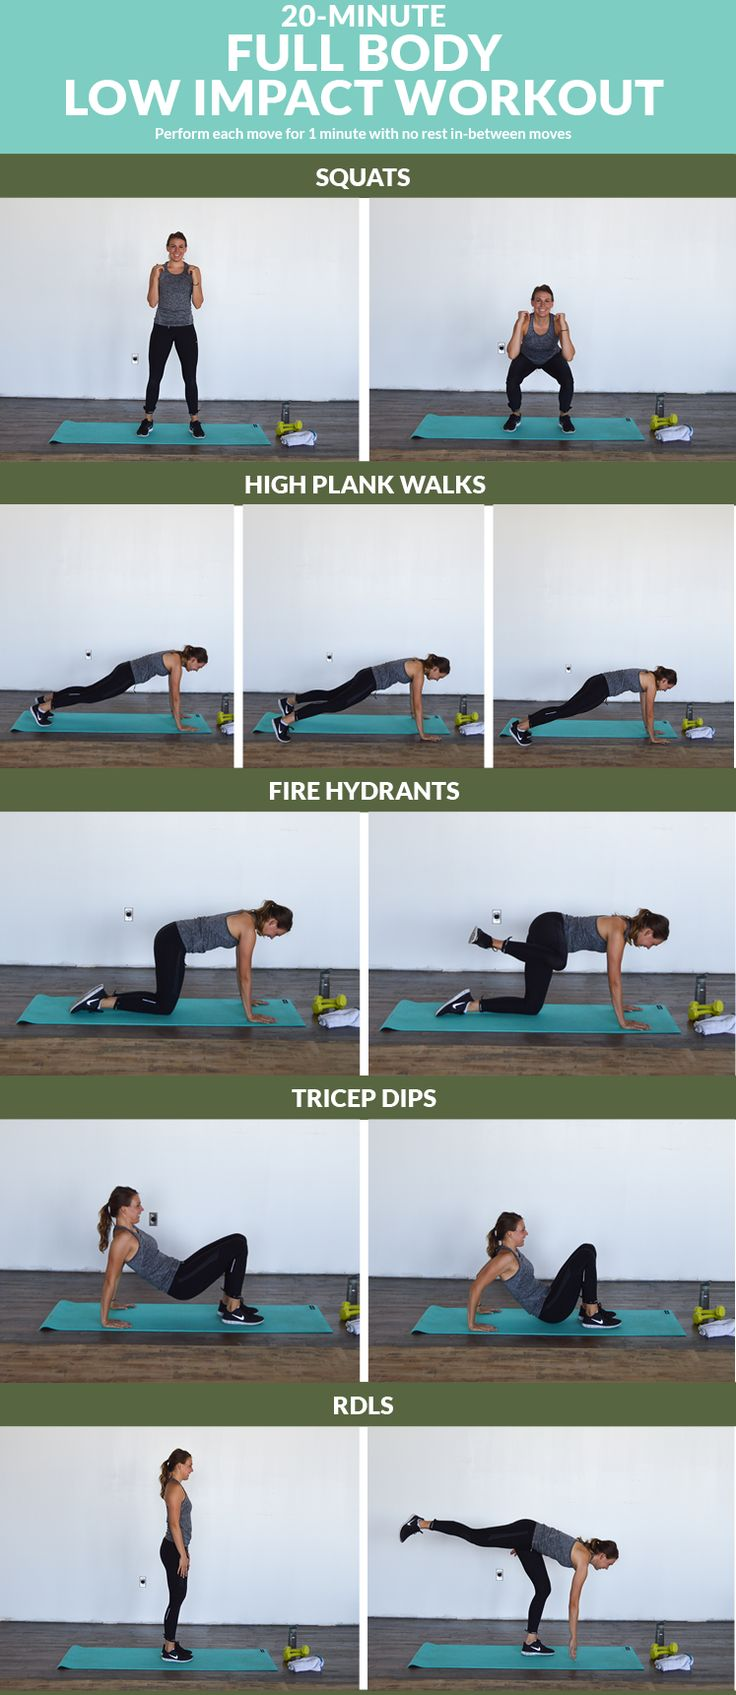 20-Minute Full Body Low Impact Workout - Get your sweat on and strengthen your muscles with these 20 low intensity moves.